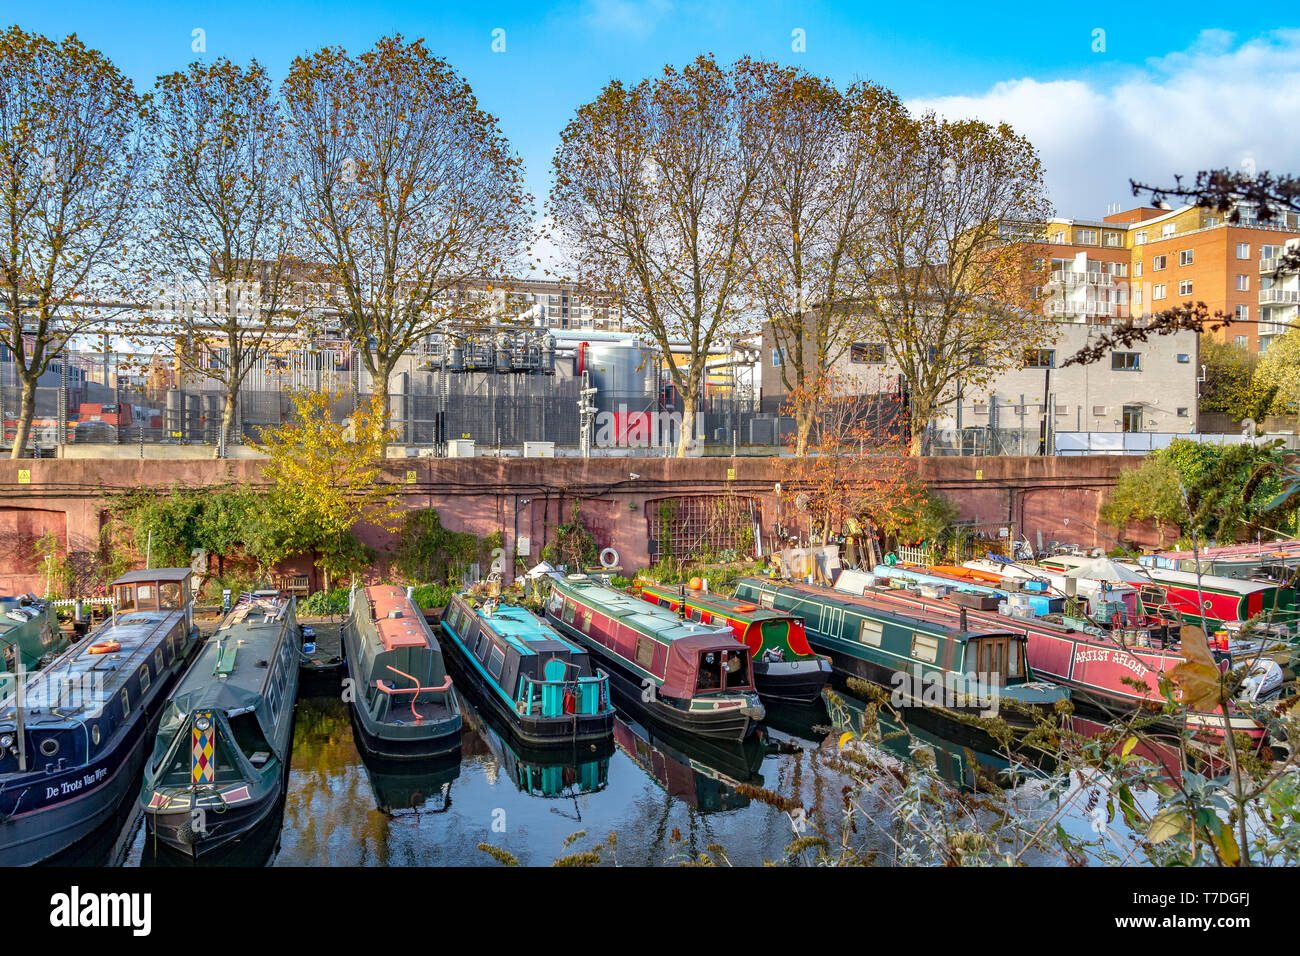 Narrow Boats on The  Grand Union Canal,London - Stock Image